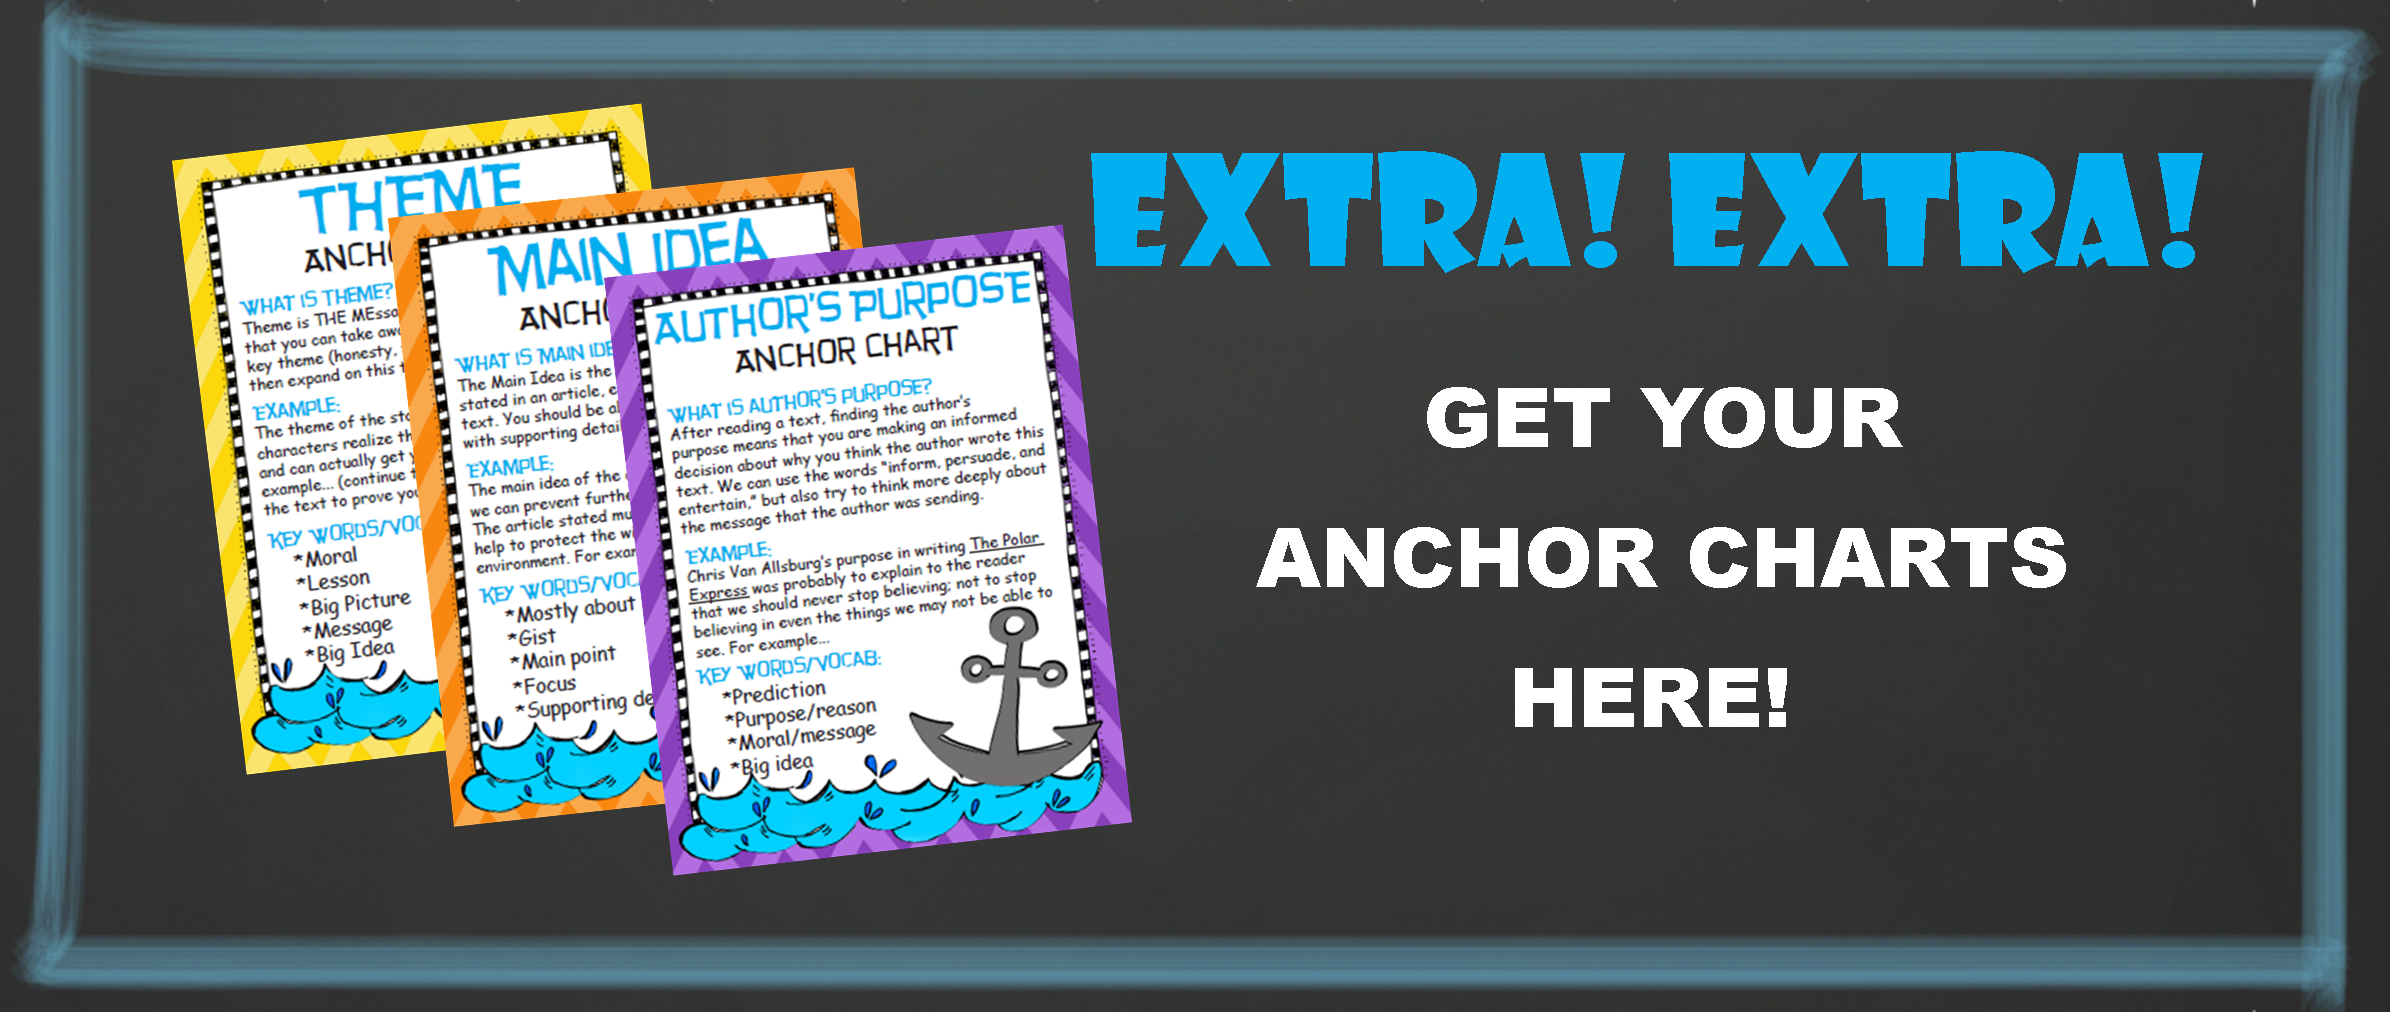 EXTRA, EXTRA…GET YOUR ANCHOR CHARTS HERE!